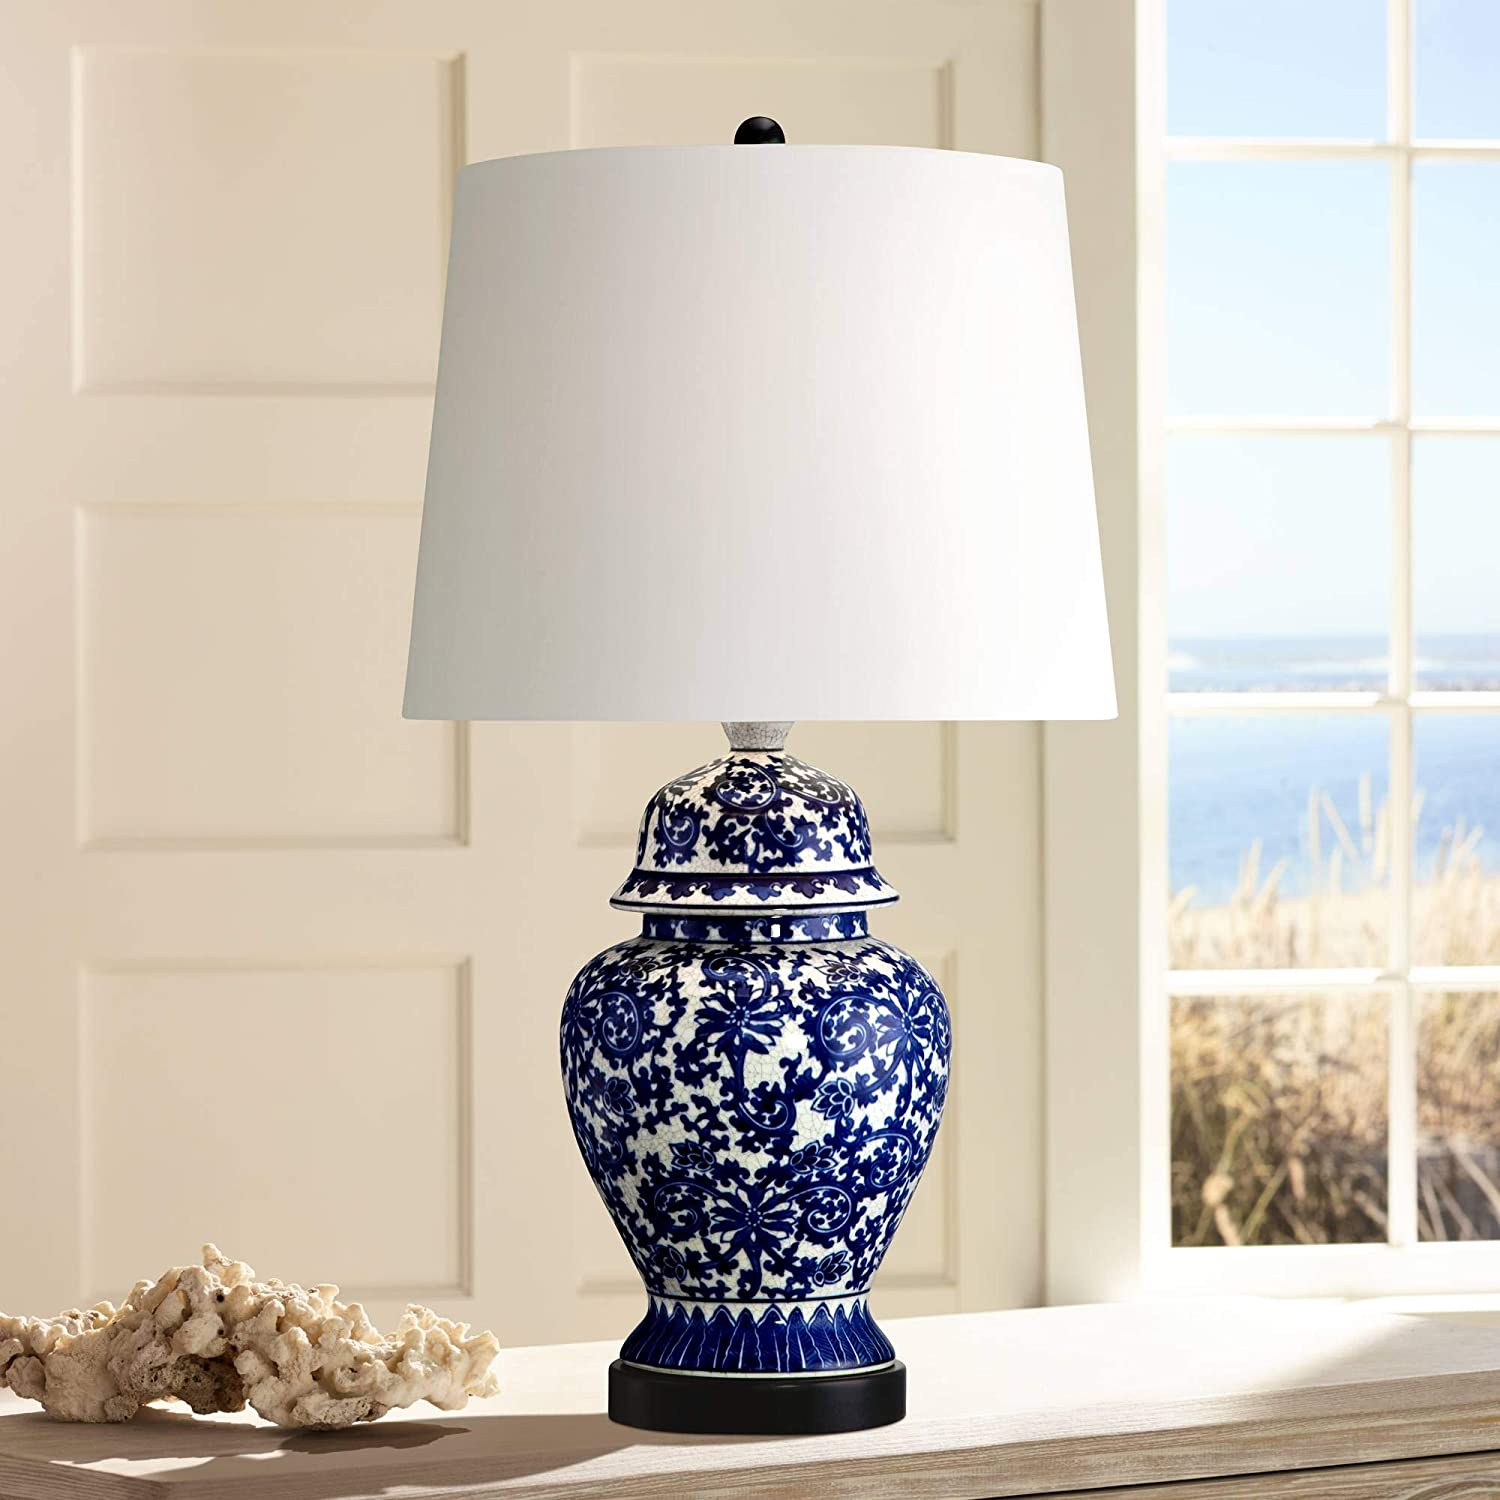 Asian table lamp temple porcelain jar blue floral white drum shade for living room family bedroom bedside nightstand regency hill amazon com